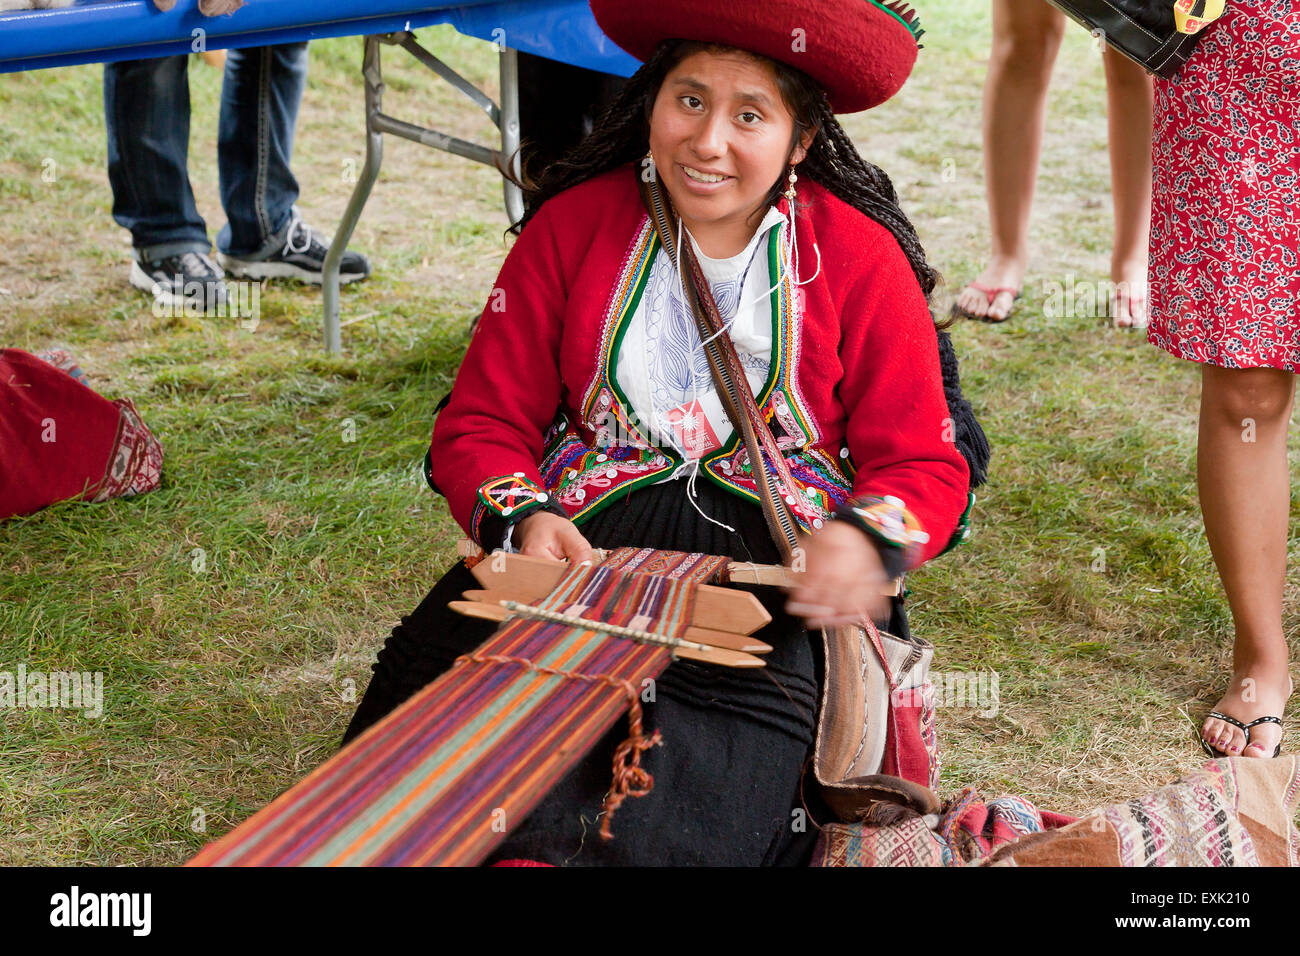 Peruvian woman from Chinchero weaving traditional fabric using a back strap loom - Stock Image